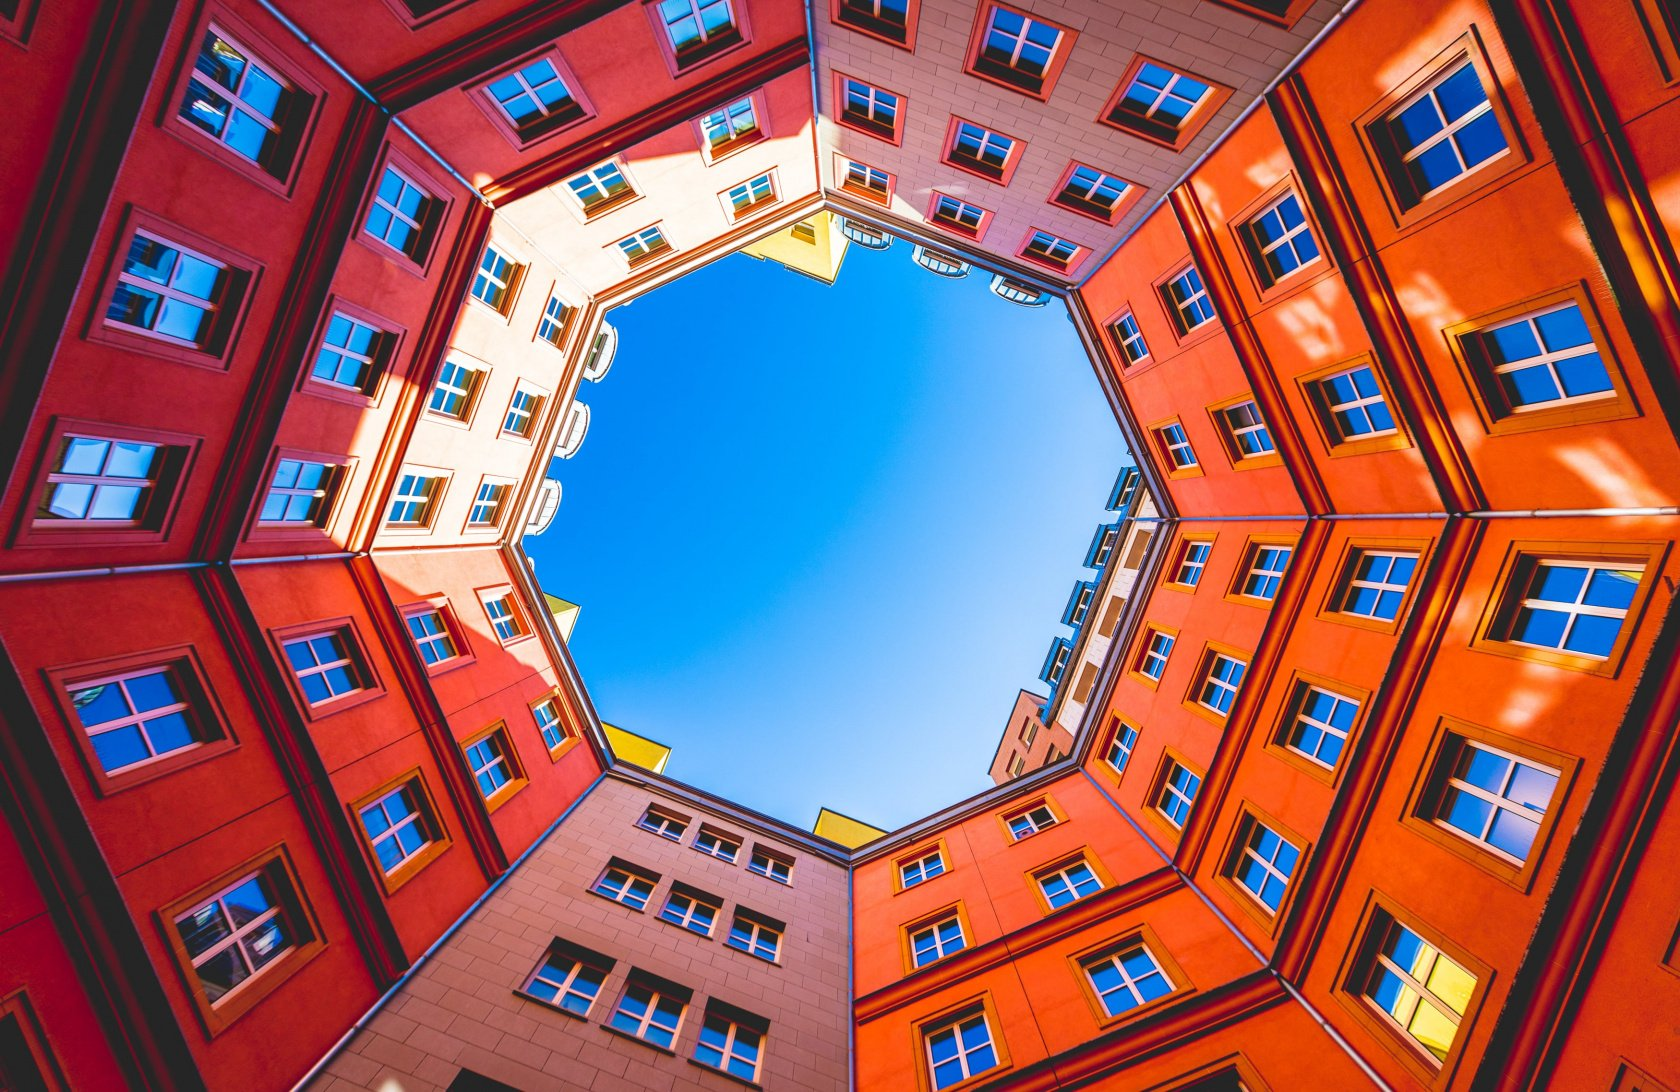 11 Ways to Work Low-angle Shots in Your Urban Photography